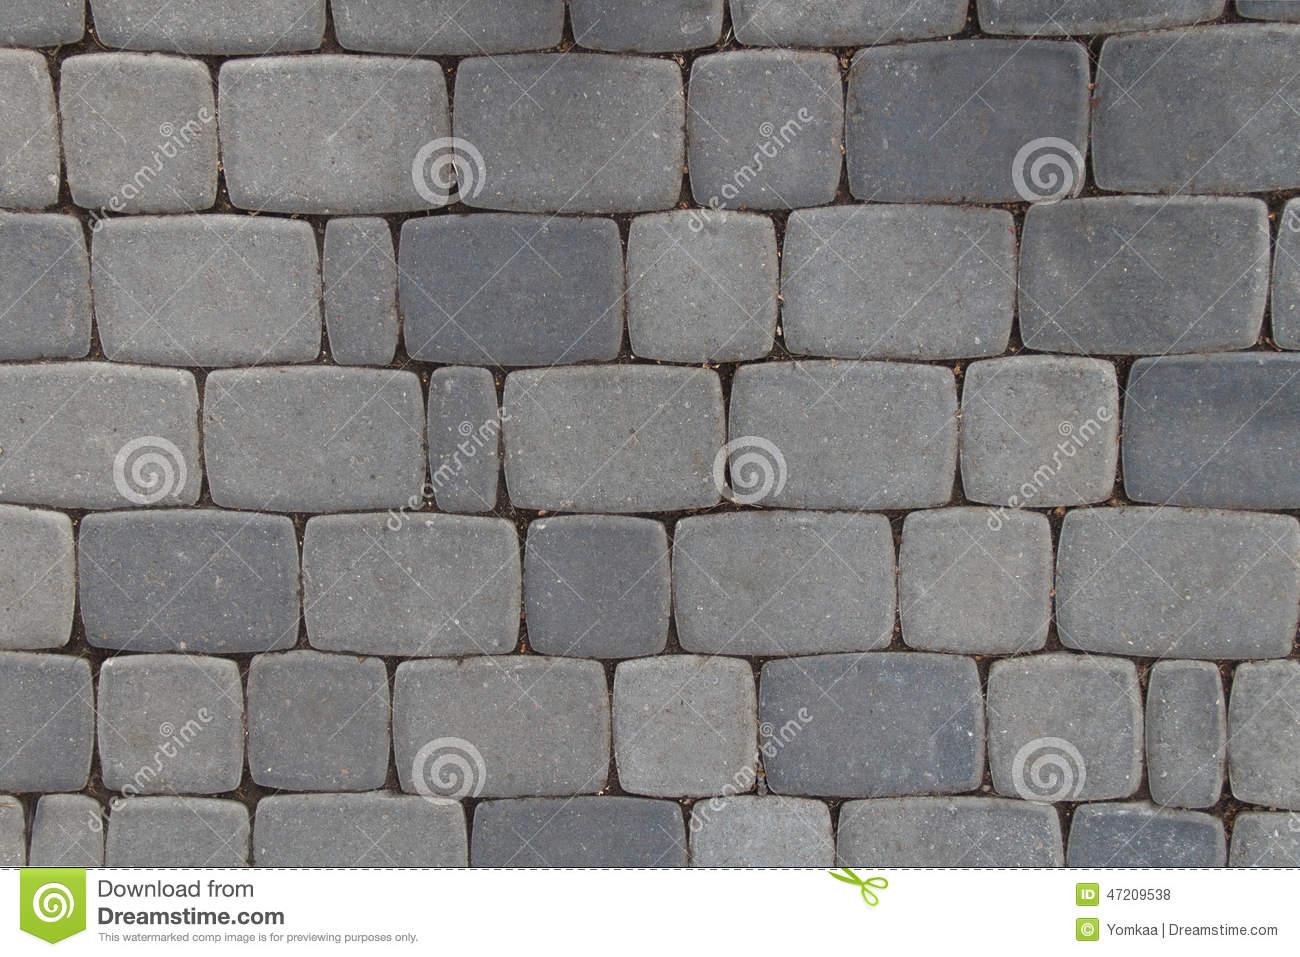 Maple Leaf Square Floor Plans Pattern Of Gray Sidewalk Pavers Stock Photo Image 47209538